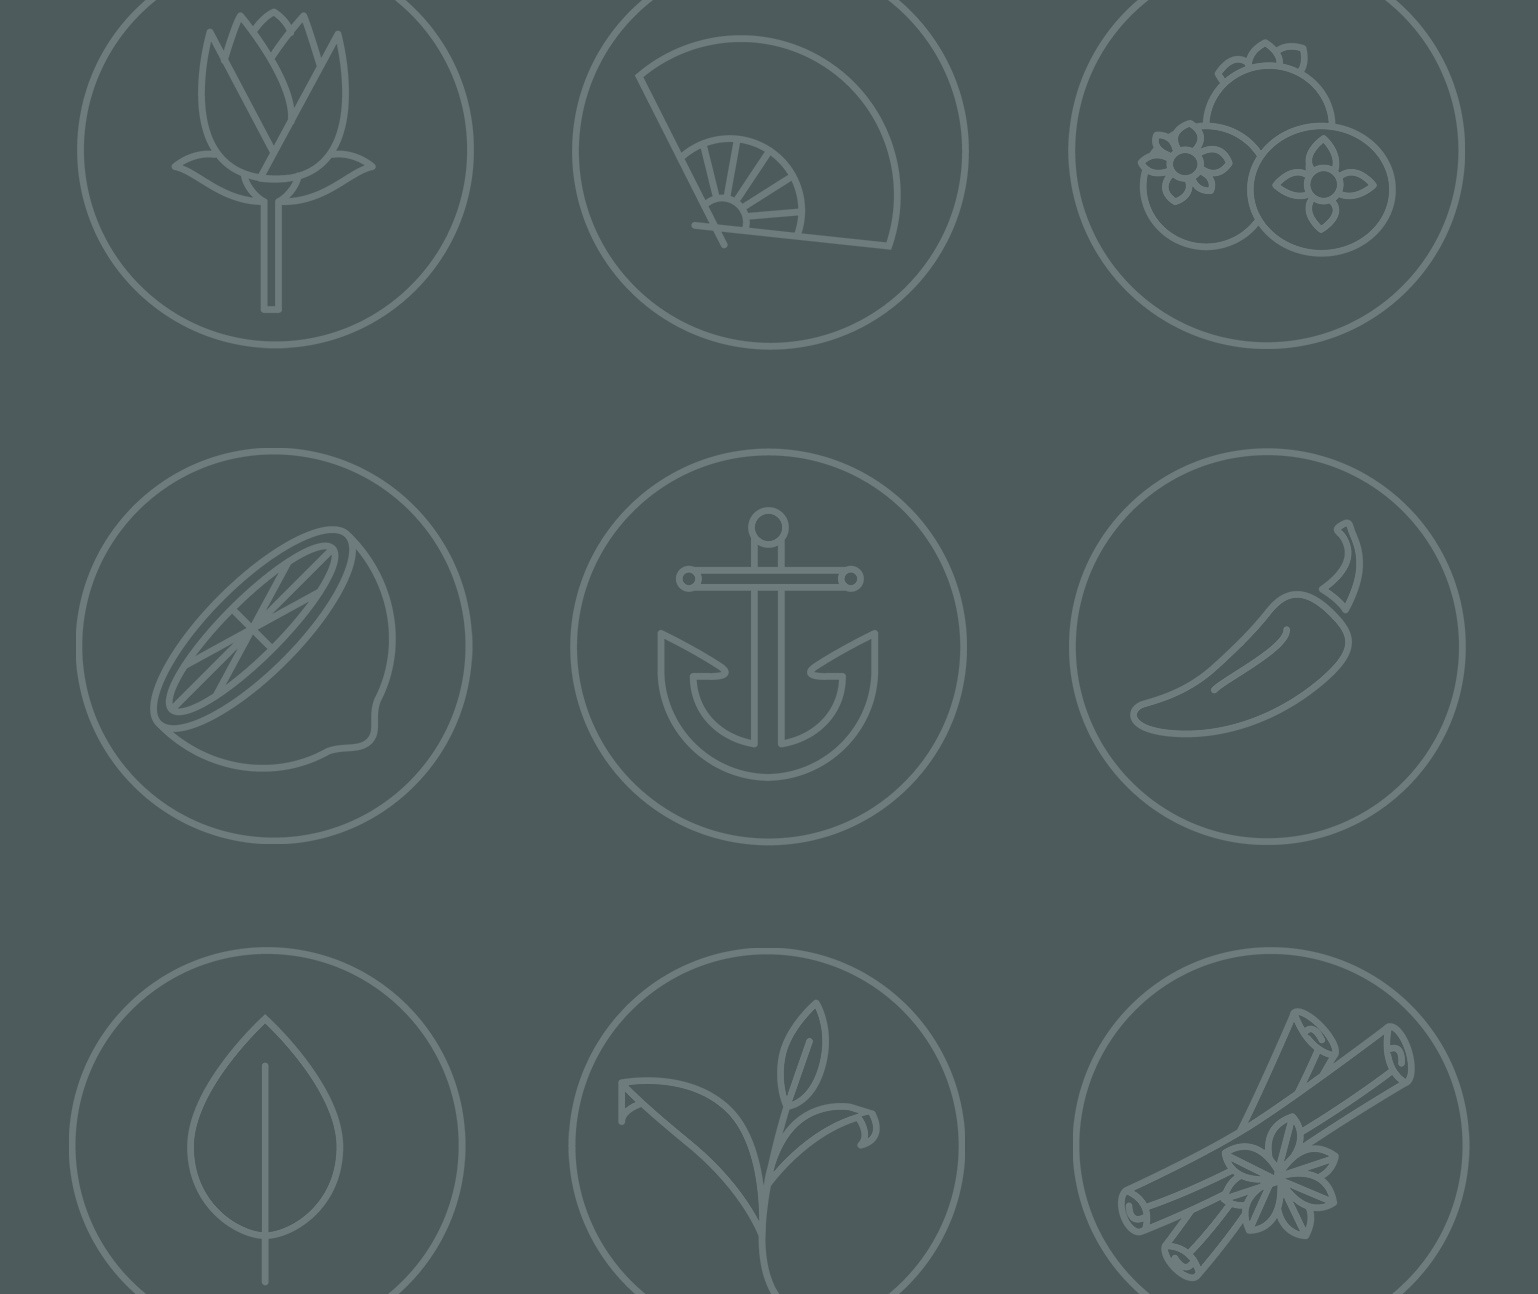 Essenza custom icons and illustrations shown in a grid